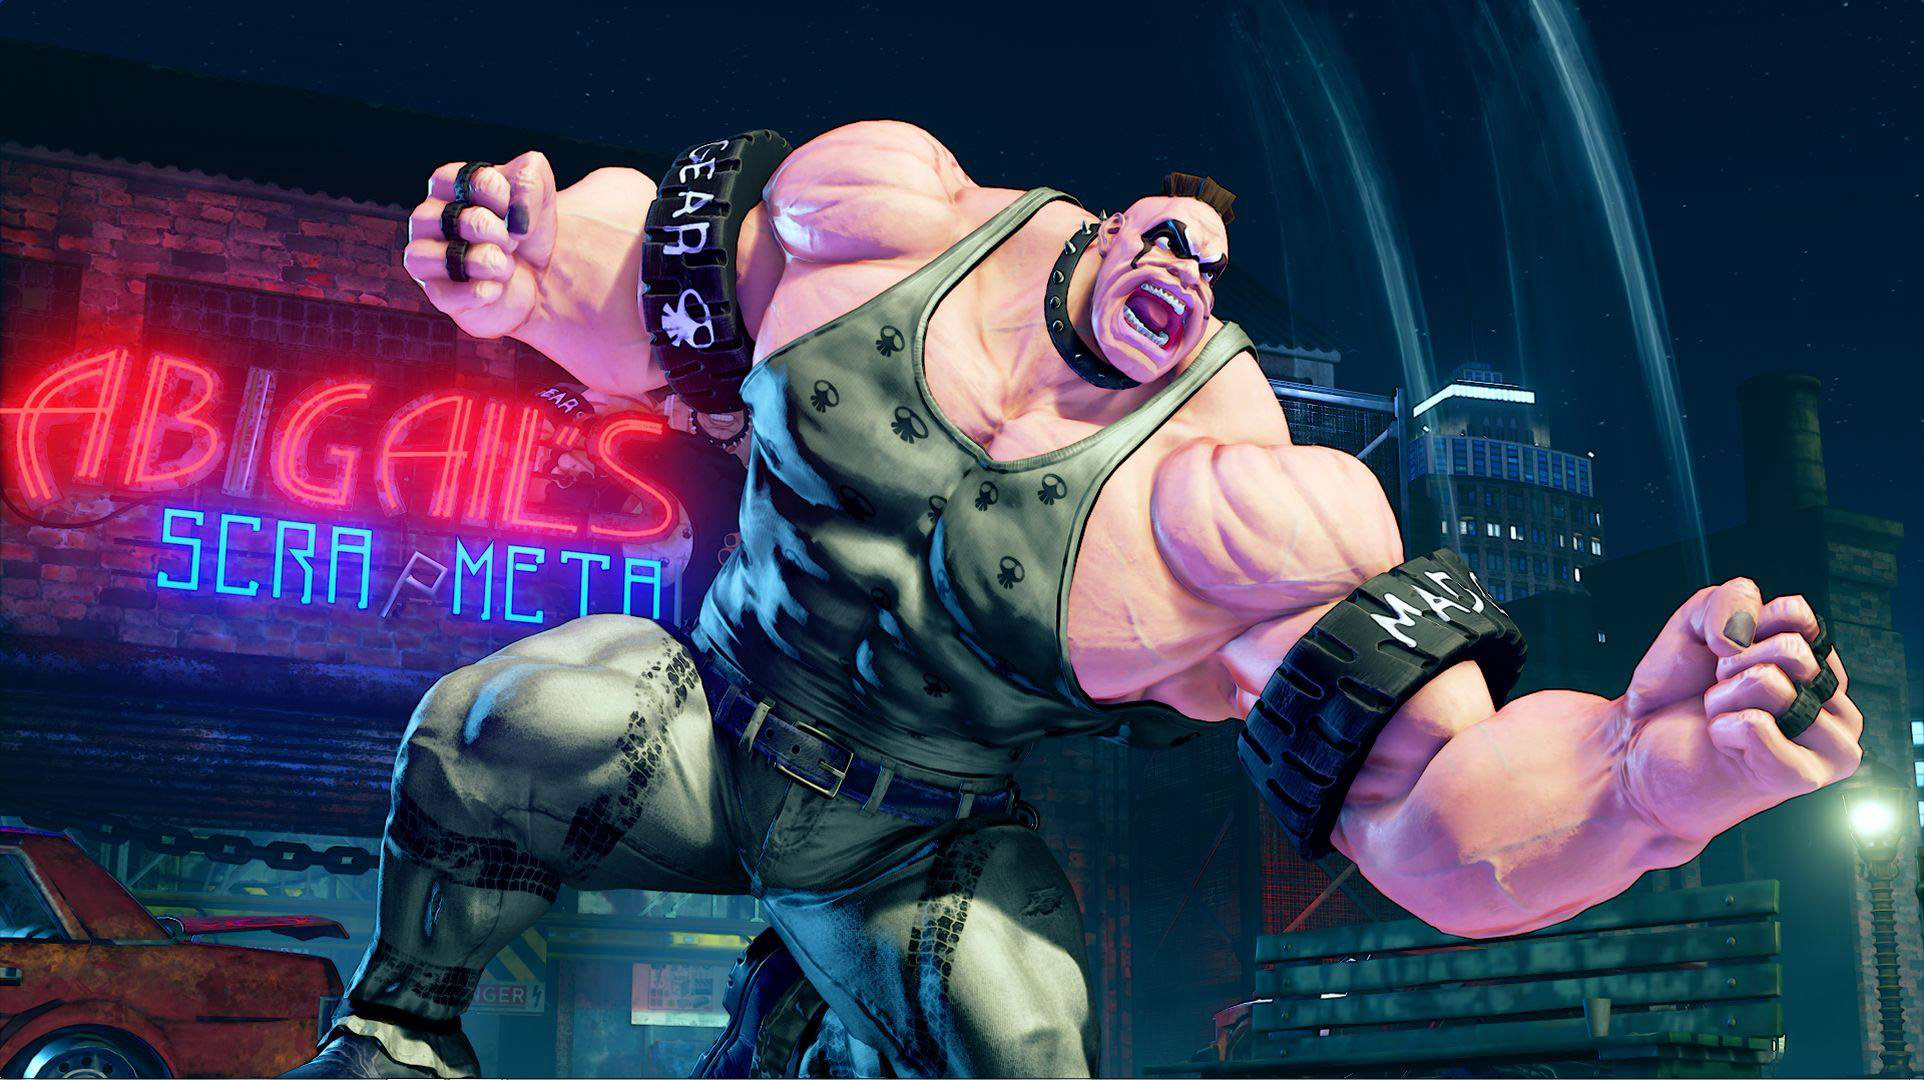 Abigail Street Fighter 5 12 out of 13 image gallery